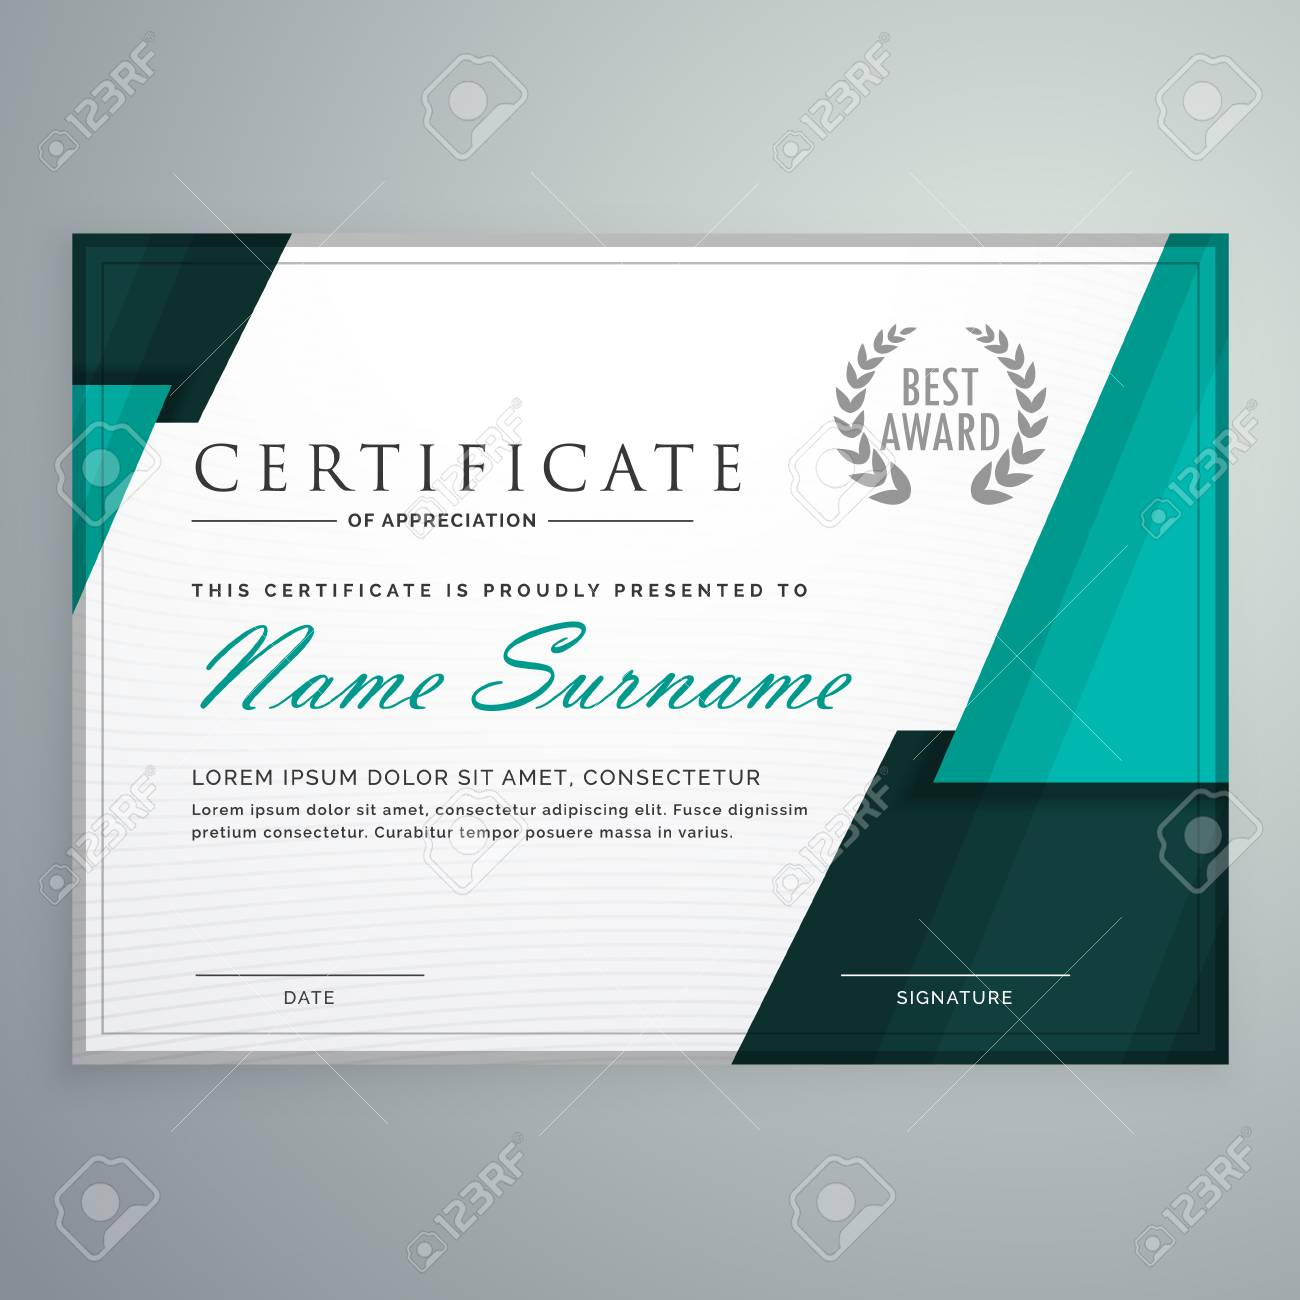 modern certificate design with abstract geometric shapes royalty